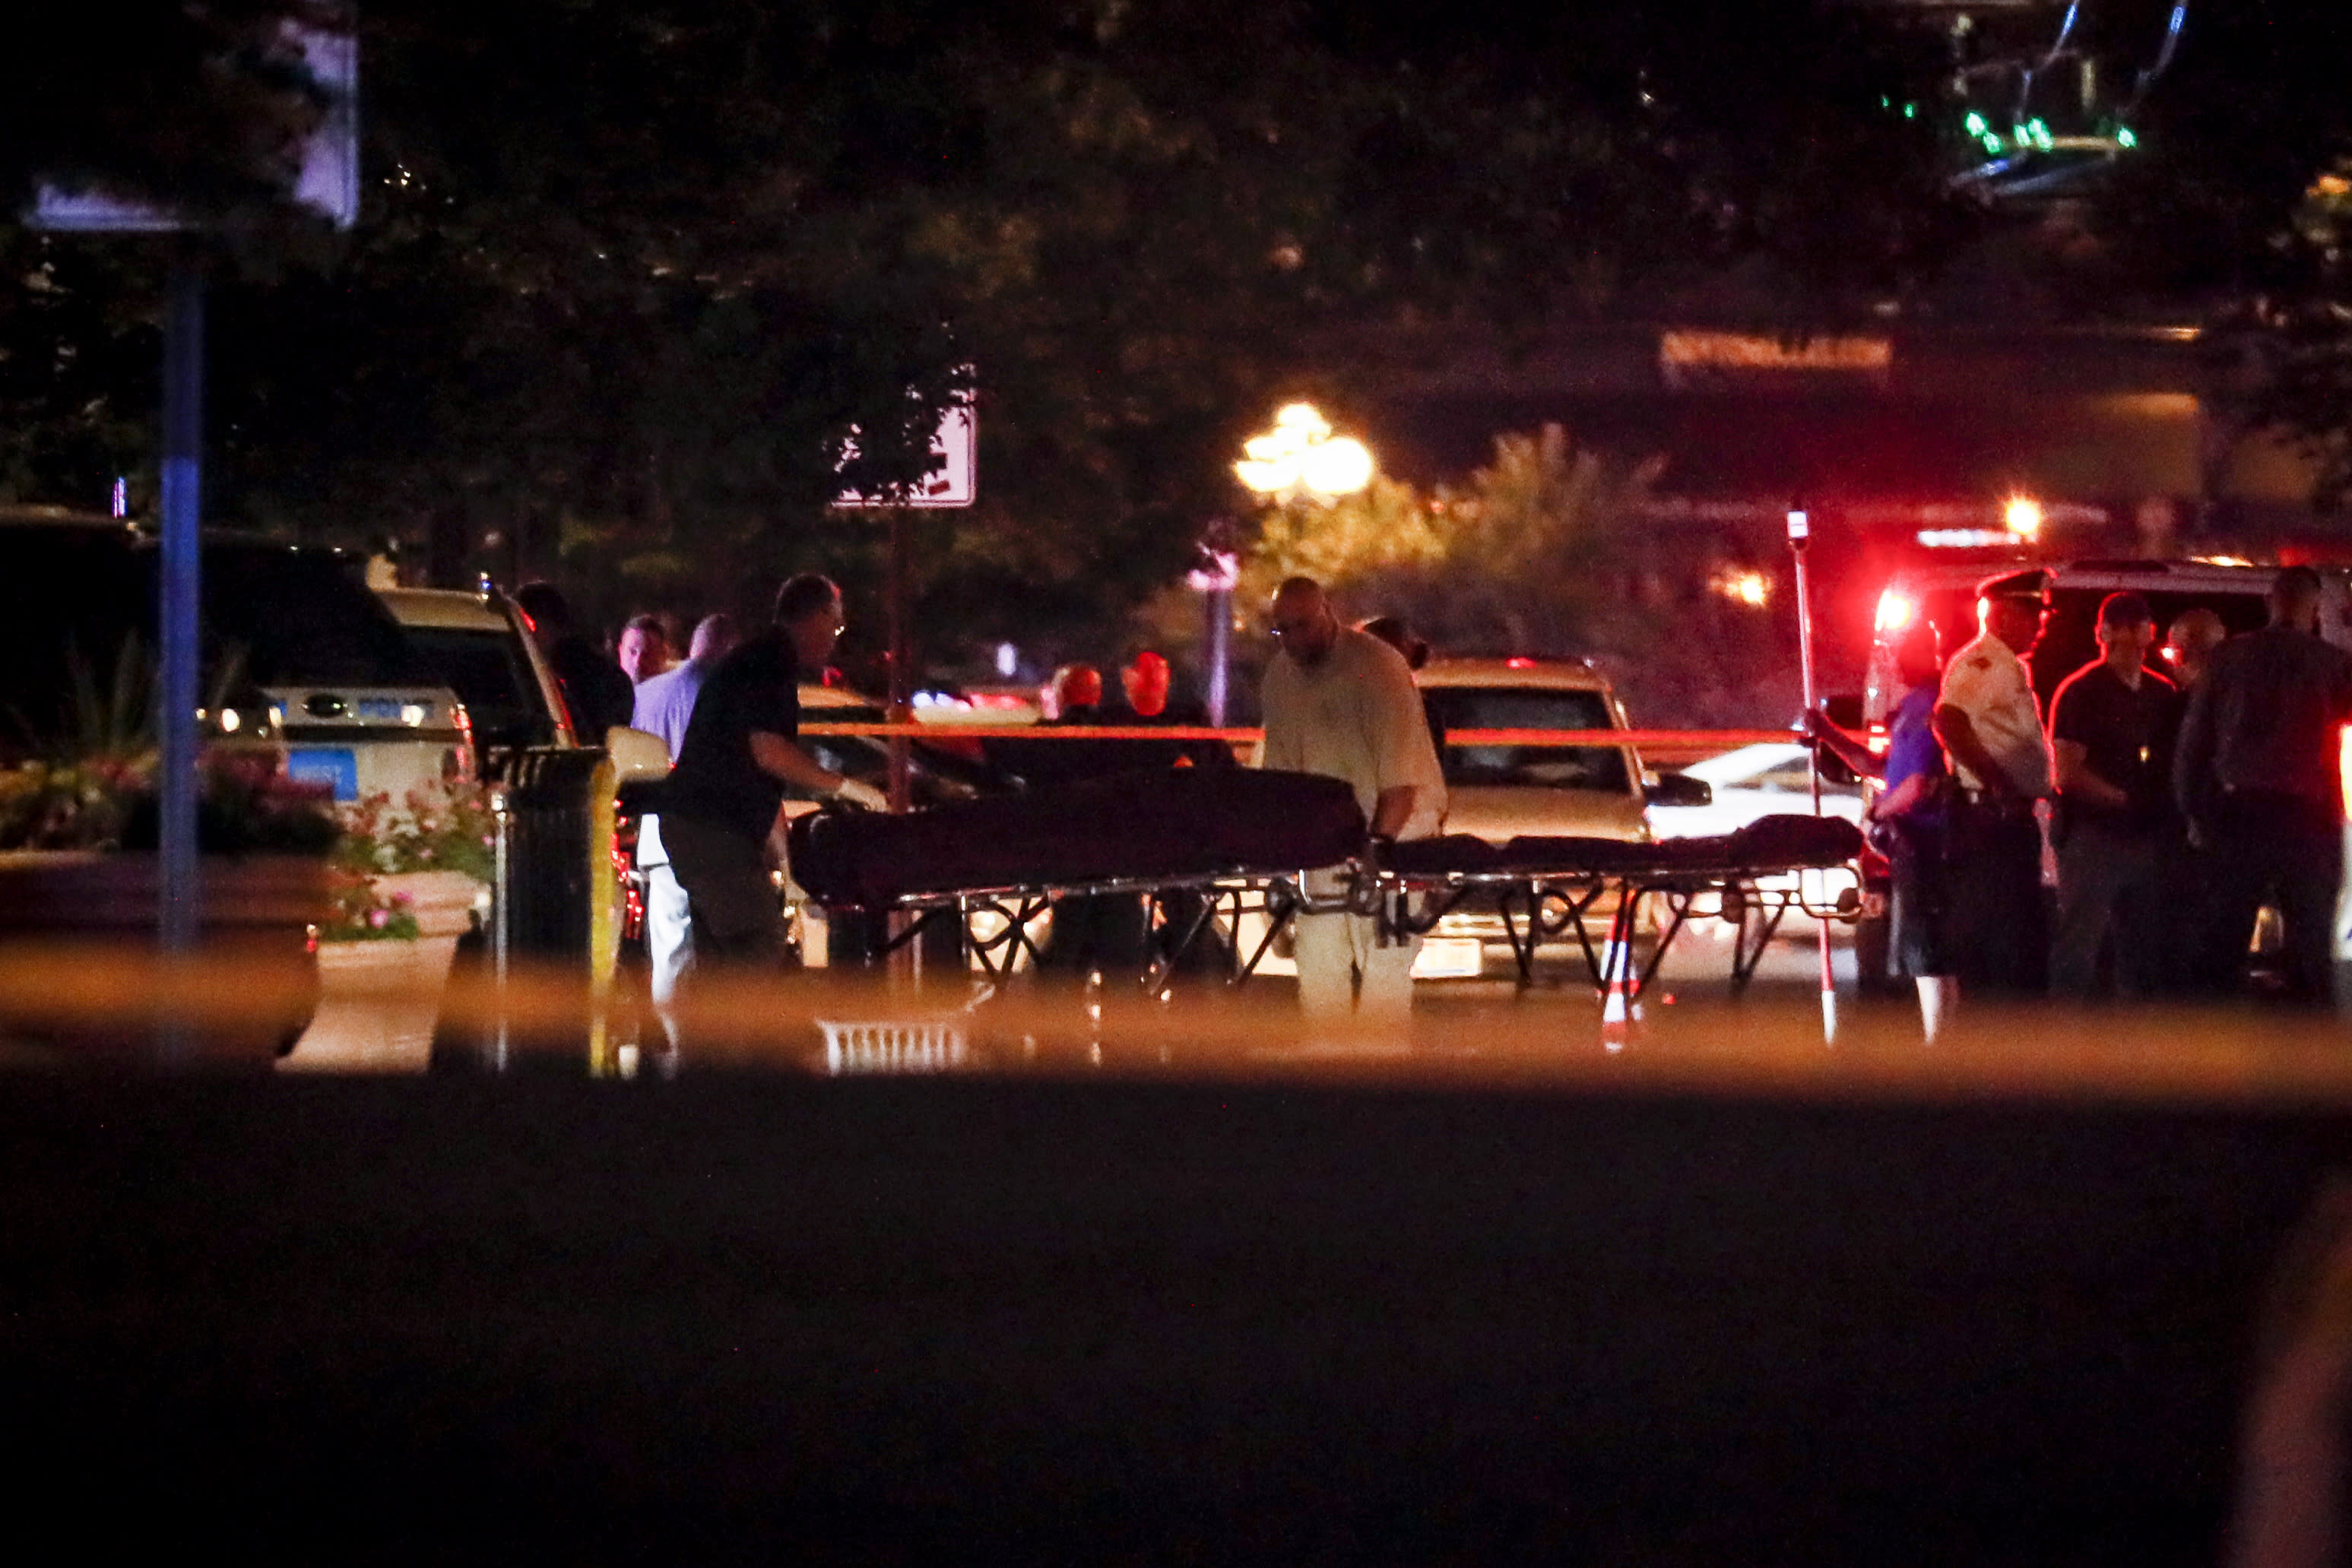 At least 9 dead, 16 injured in OH  mass shooting; suspect dead